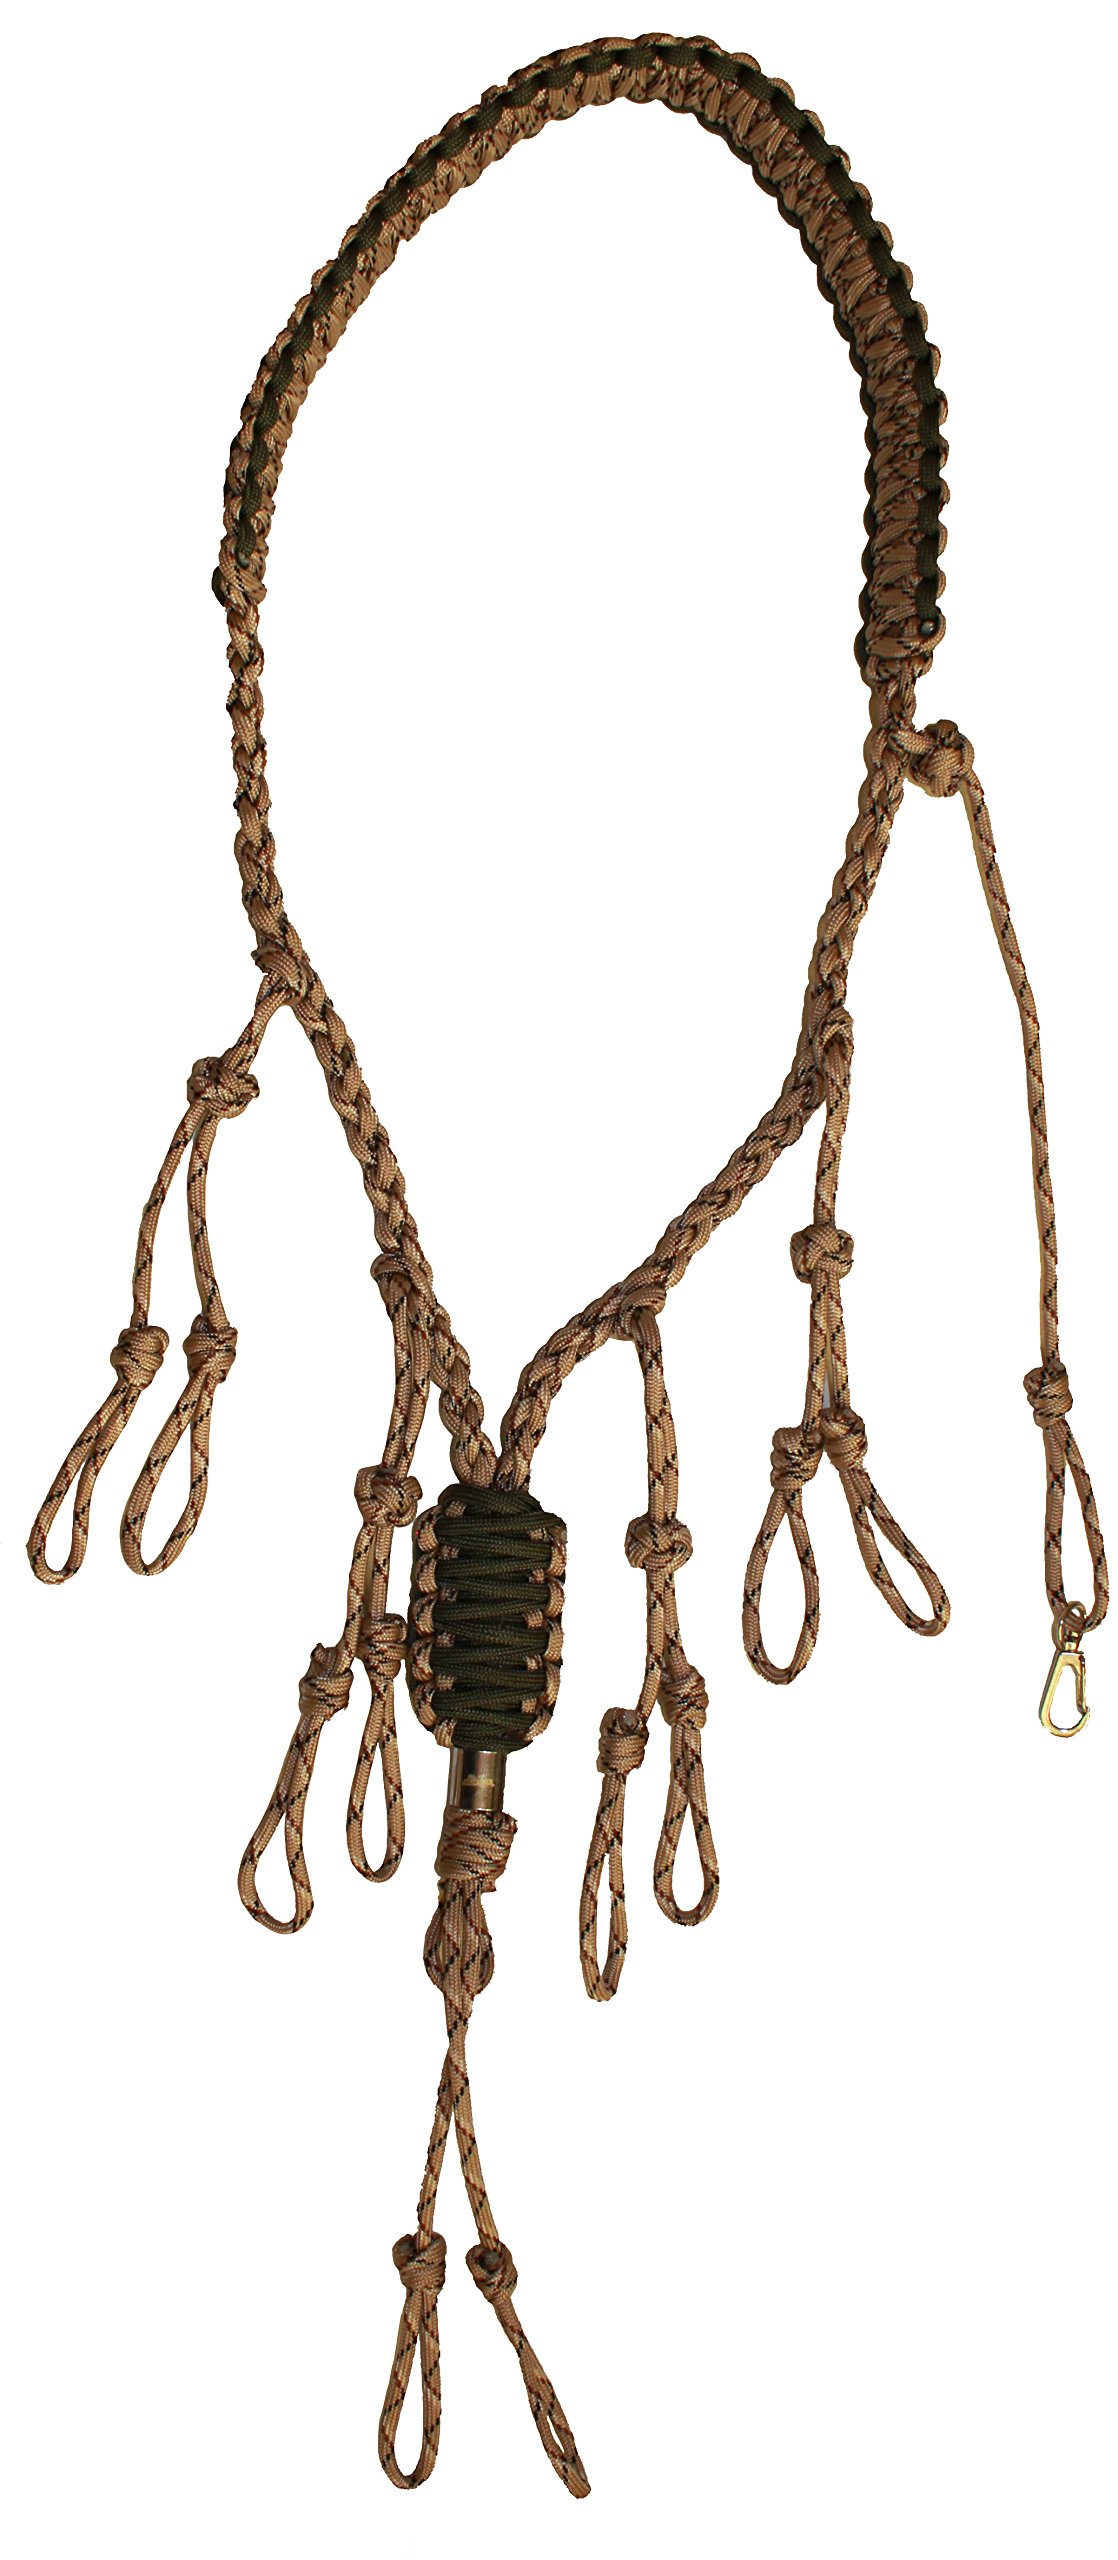 Duck Call Lanyard – Secures 5 Calls – Premium Hand Braided Camo 550 Paracord – Best for Goose, Predator, Varmint, Deer or Duck Calls – Adjustable Loops - Outdoor Hunting Gear – Protect your investments - Lifetime No-Hassle Free Replacement Guara by Delta Duck Company (Image #1)